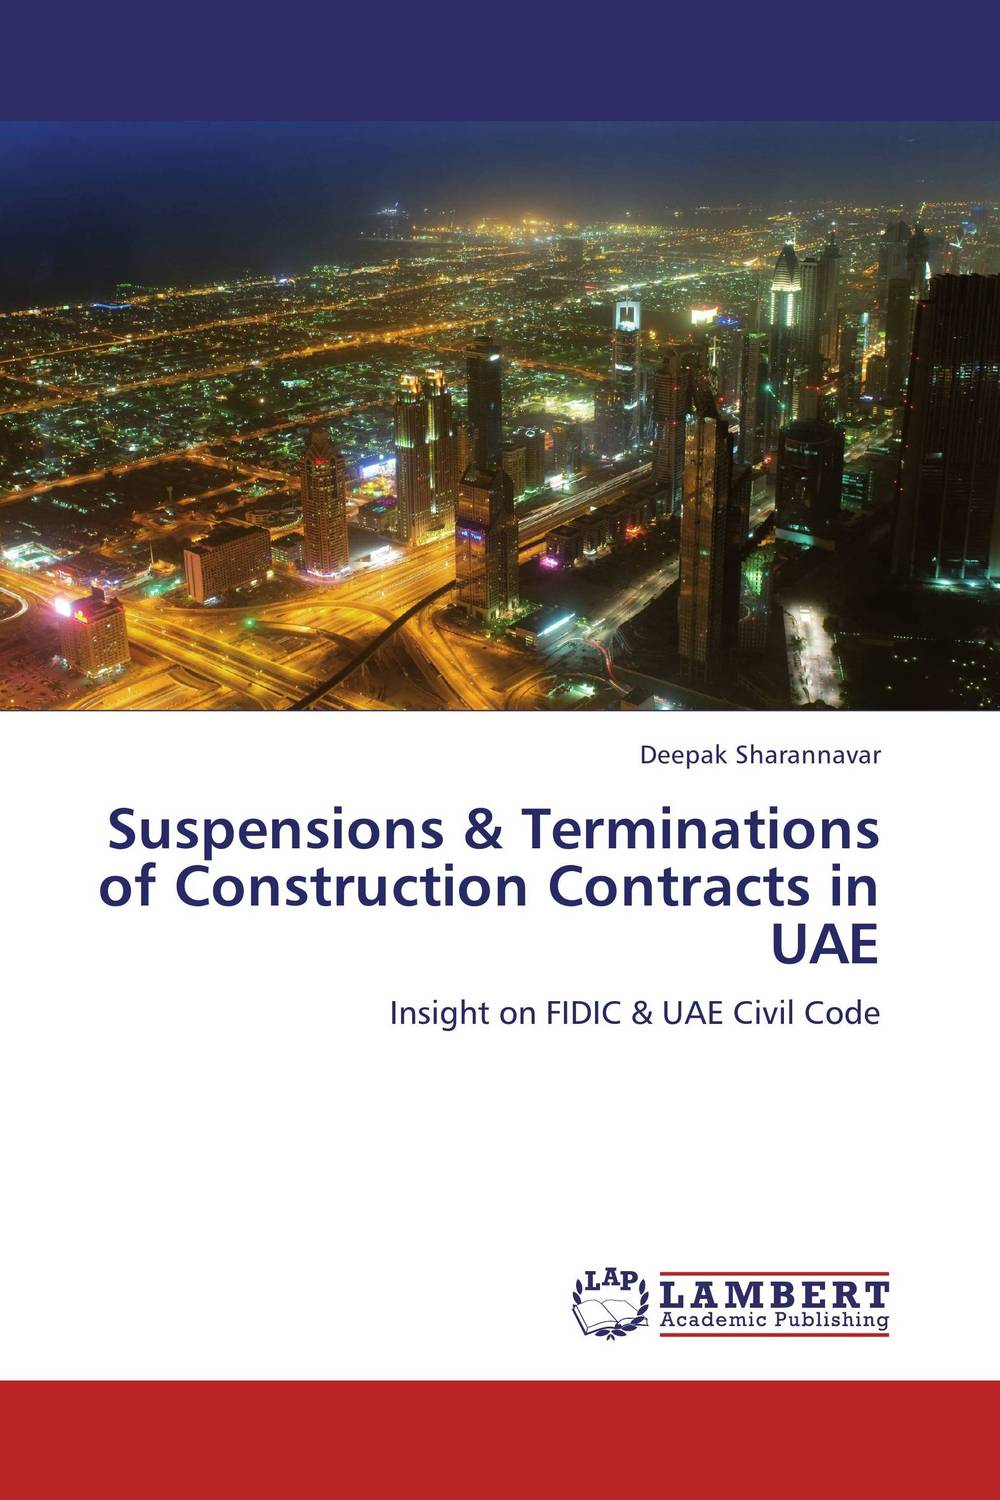 Suspensions & Terminations of Construction Contracts in UAE